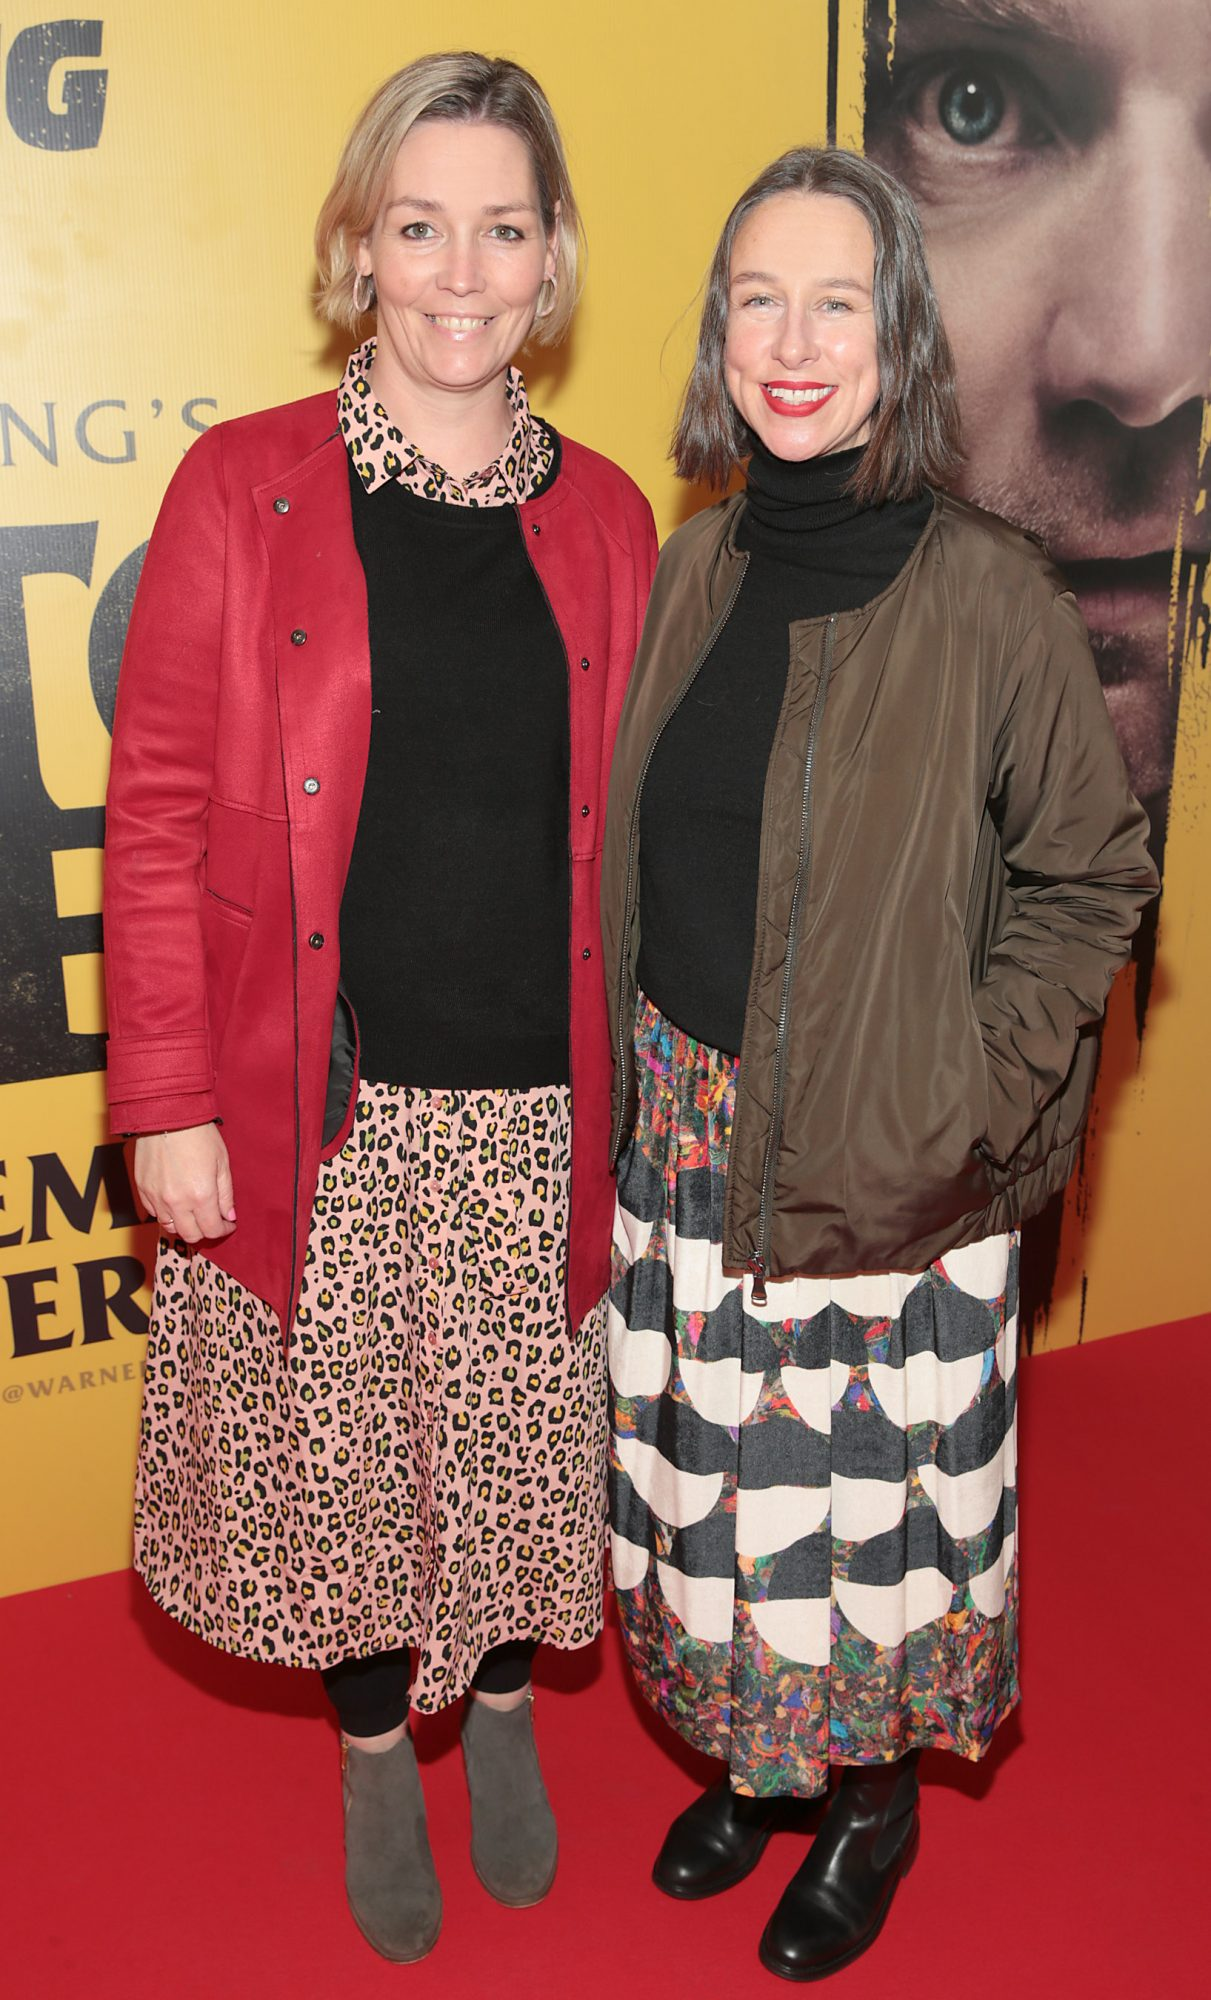 Siobhan Gethins and Jan Brierton at the special preview screening of Doctor Sleep at the Light House Cinema, Dublin. Pic: Brian McEvoy.